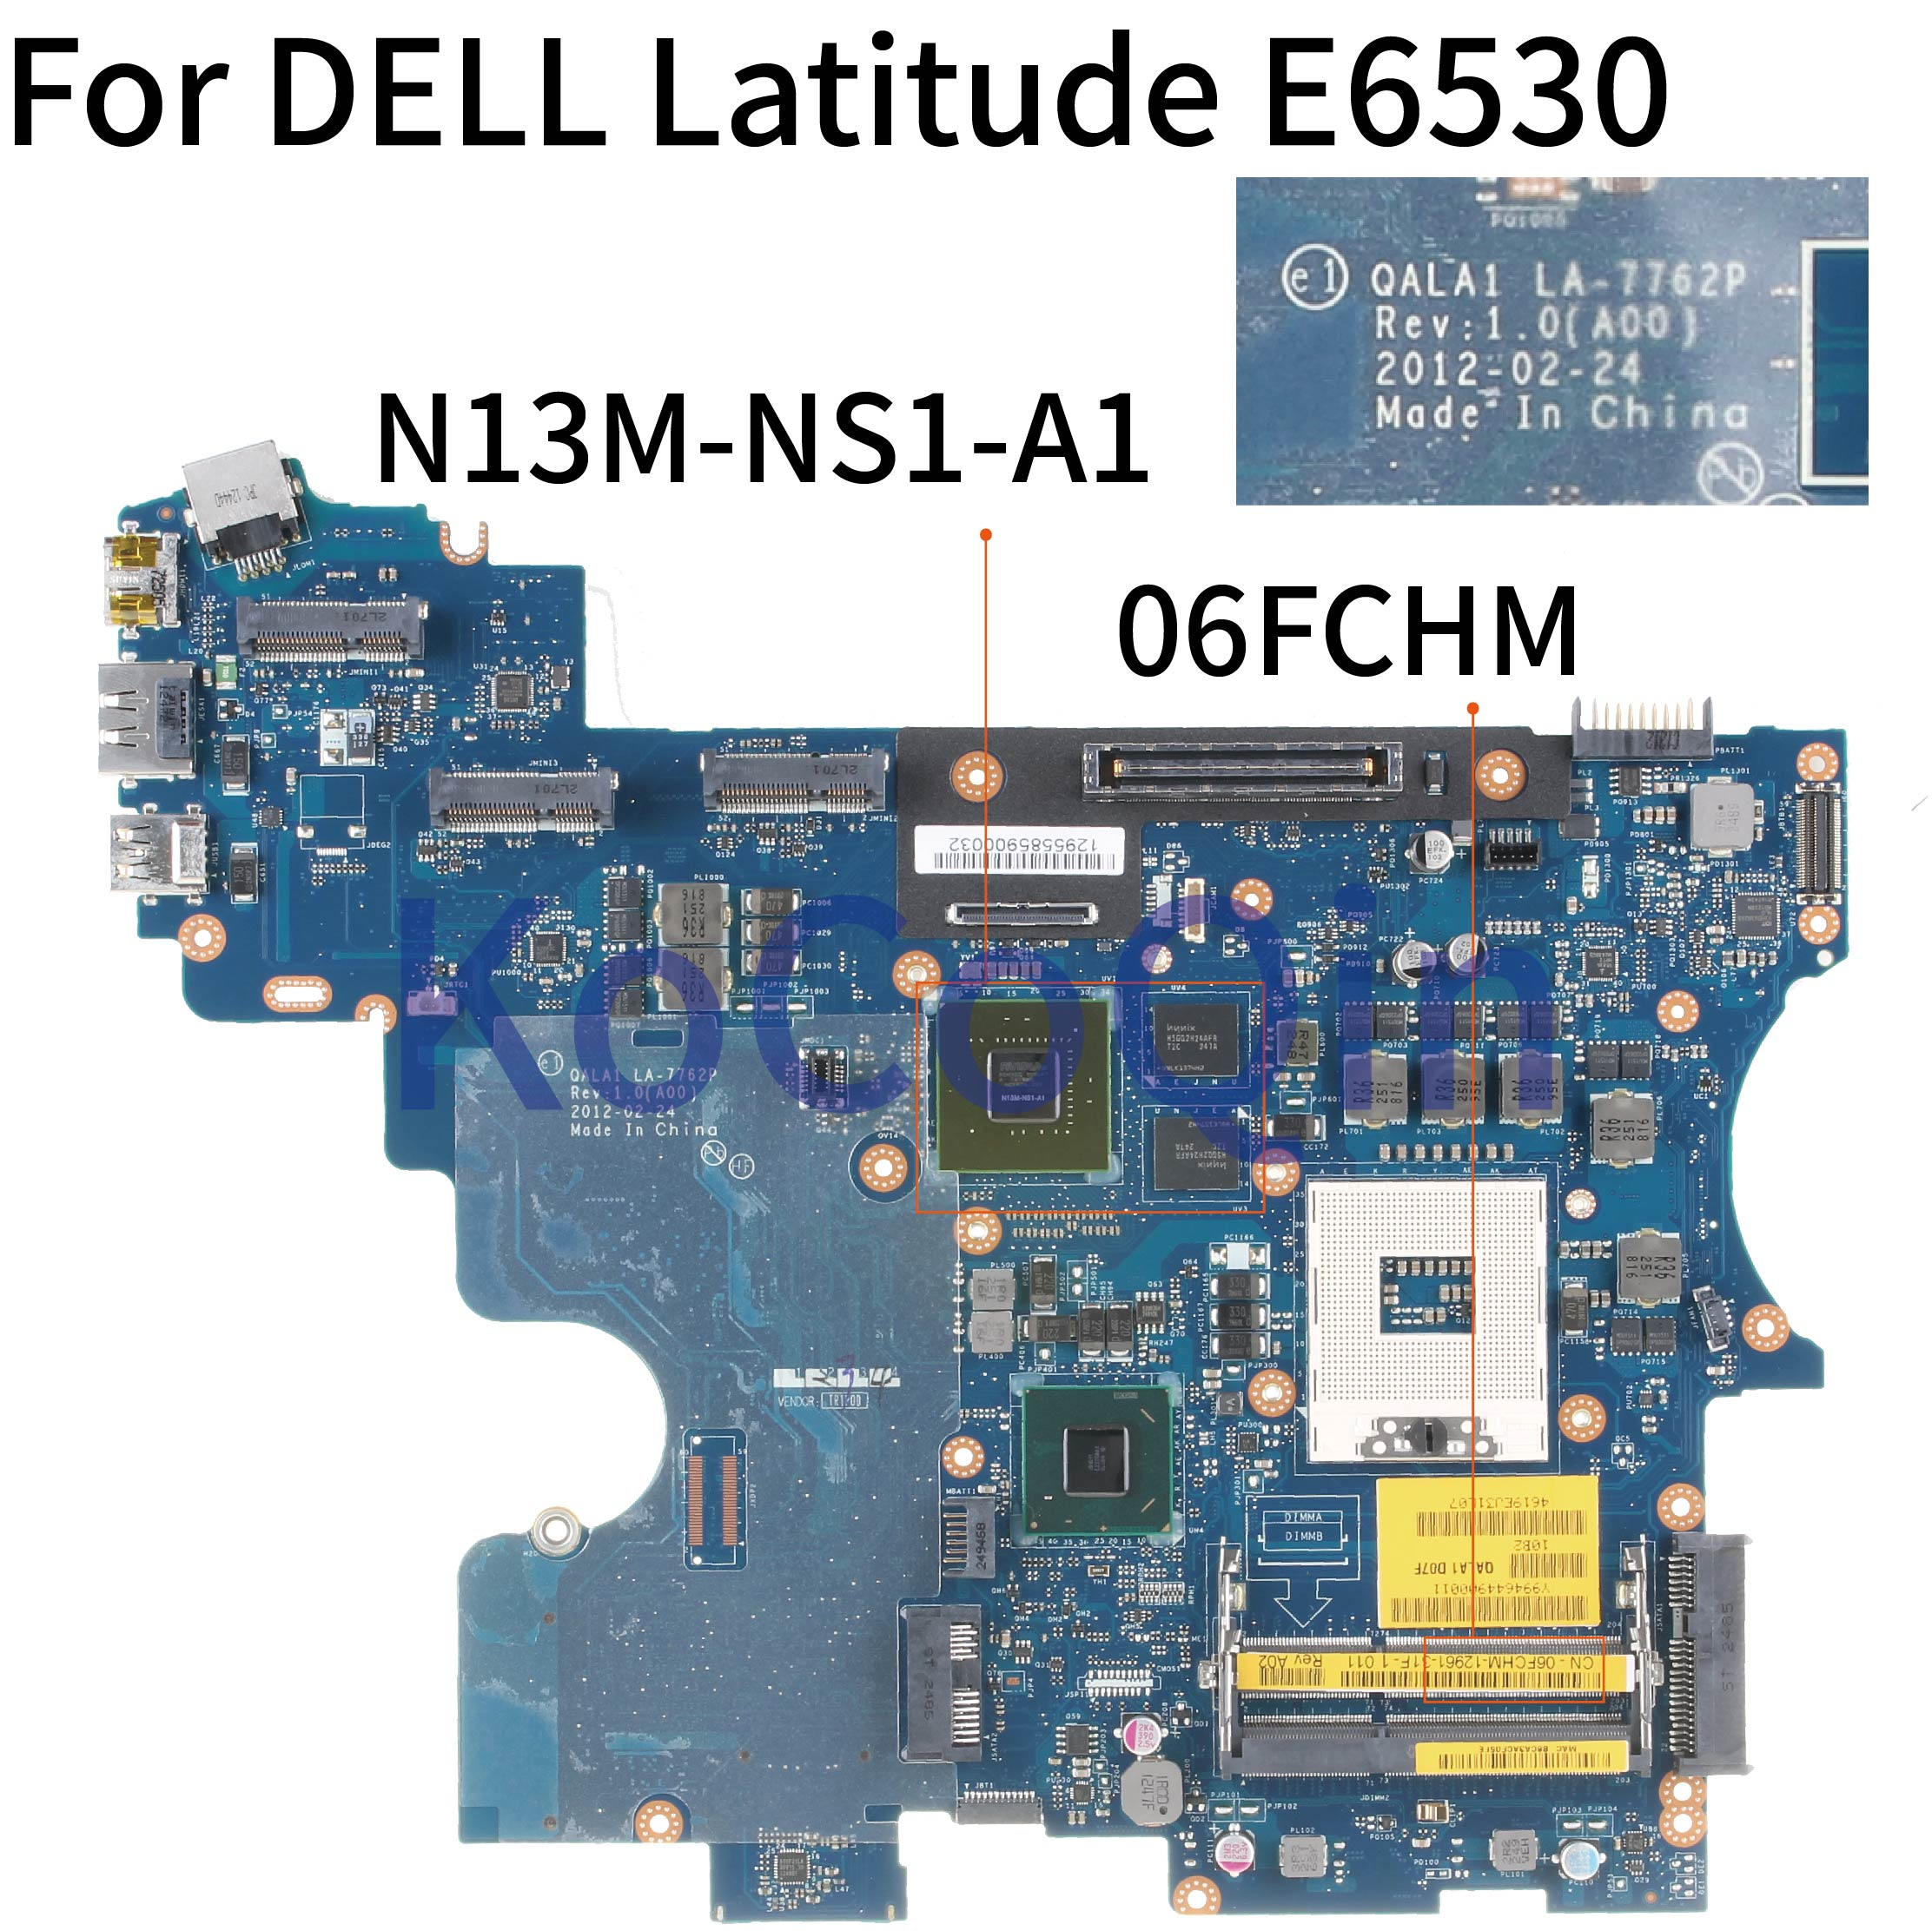 KoCoQin Laptop Motherboard For DELL Latitude E6530 SLJ8A 5200M 1G Mainboard CN-06FCHM 06FCHM QALA1 LA-7762P N13M-NS1-A1